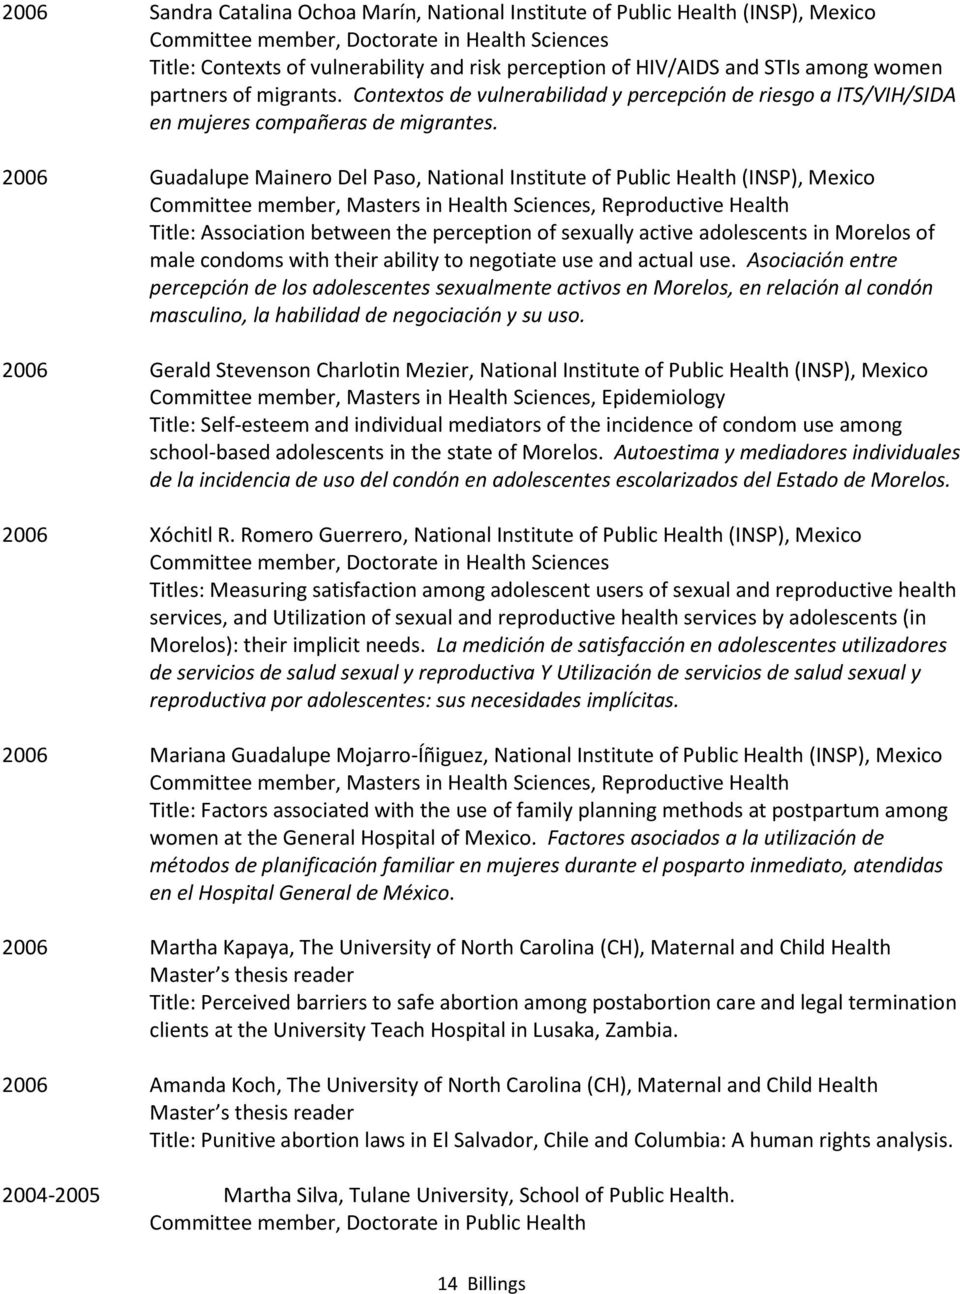 2006 Guadalupe Mainero Del Paso, National Institute of Public Health (INSP), Mexico Committee member, Masters in Health Sciences, Reproductive Health Title: Association between the perception of